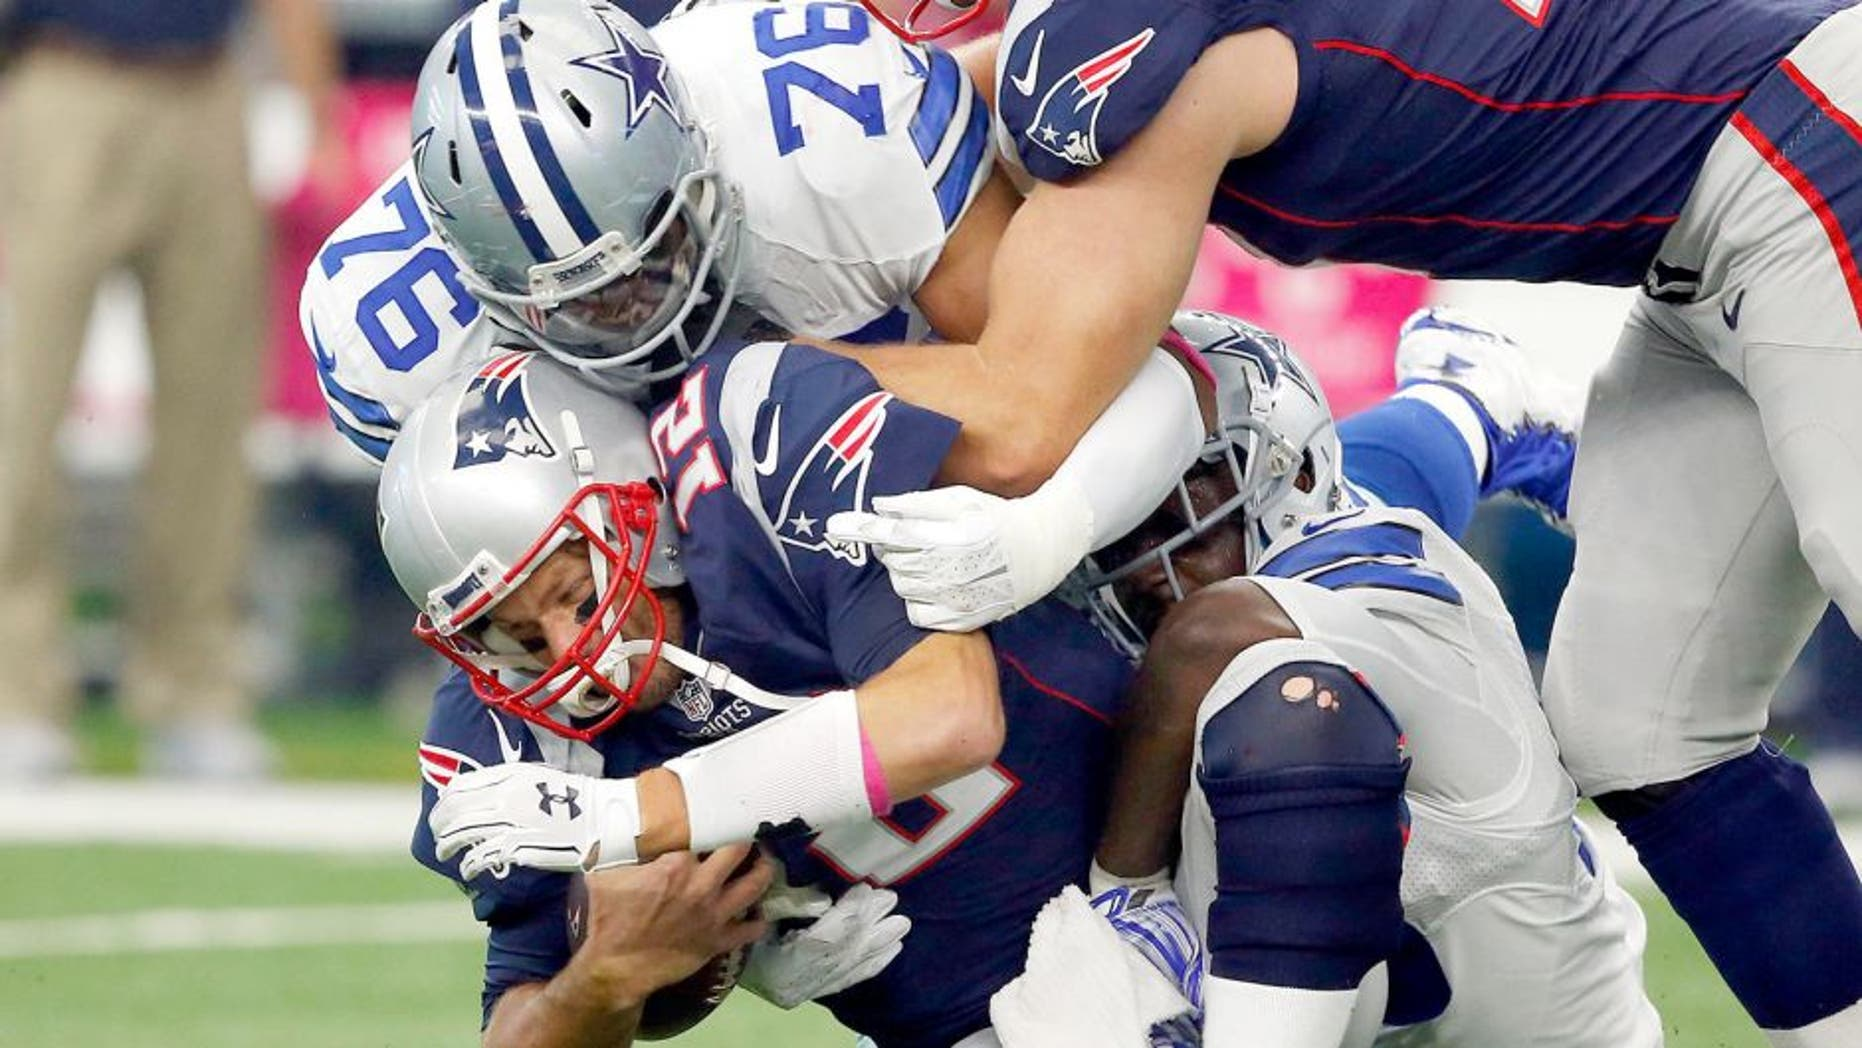 Oct 11, 2015; Arlington, TX, USA; New England Patriots quarterback Tom Brady (12) is sacked by Dallas Cowboys linebacker Rolando McClain (55) and defensive end Greg Hardy (76) at AT&T Stadium. Patriots tackle Nate Solder (77) trying to block out Hardy (76). Mandatory Credit: Erich Schlegel-USA TODAY Sports